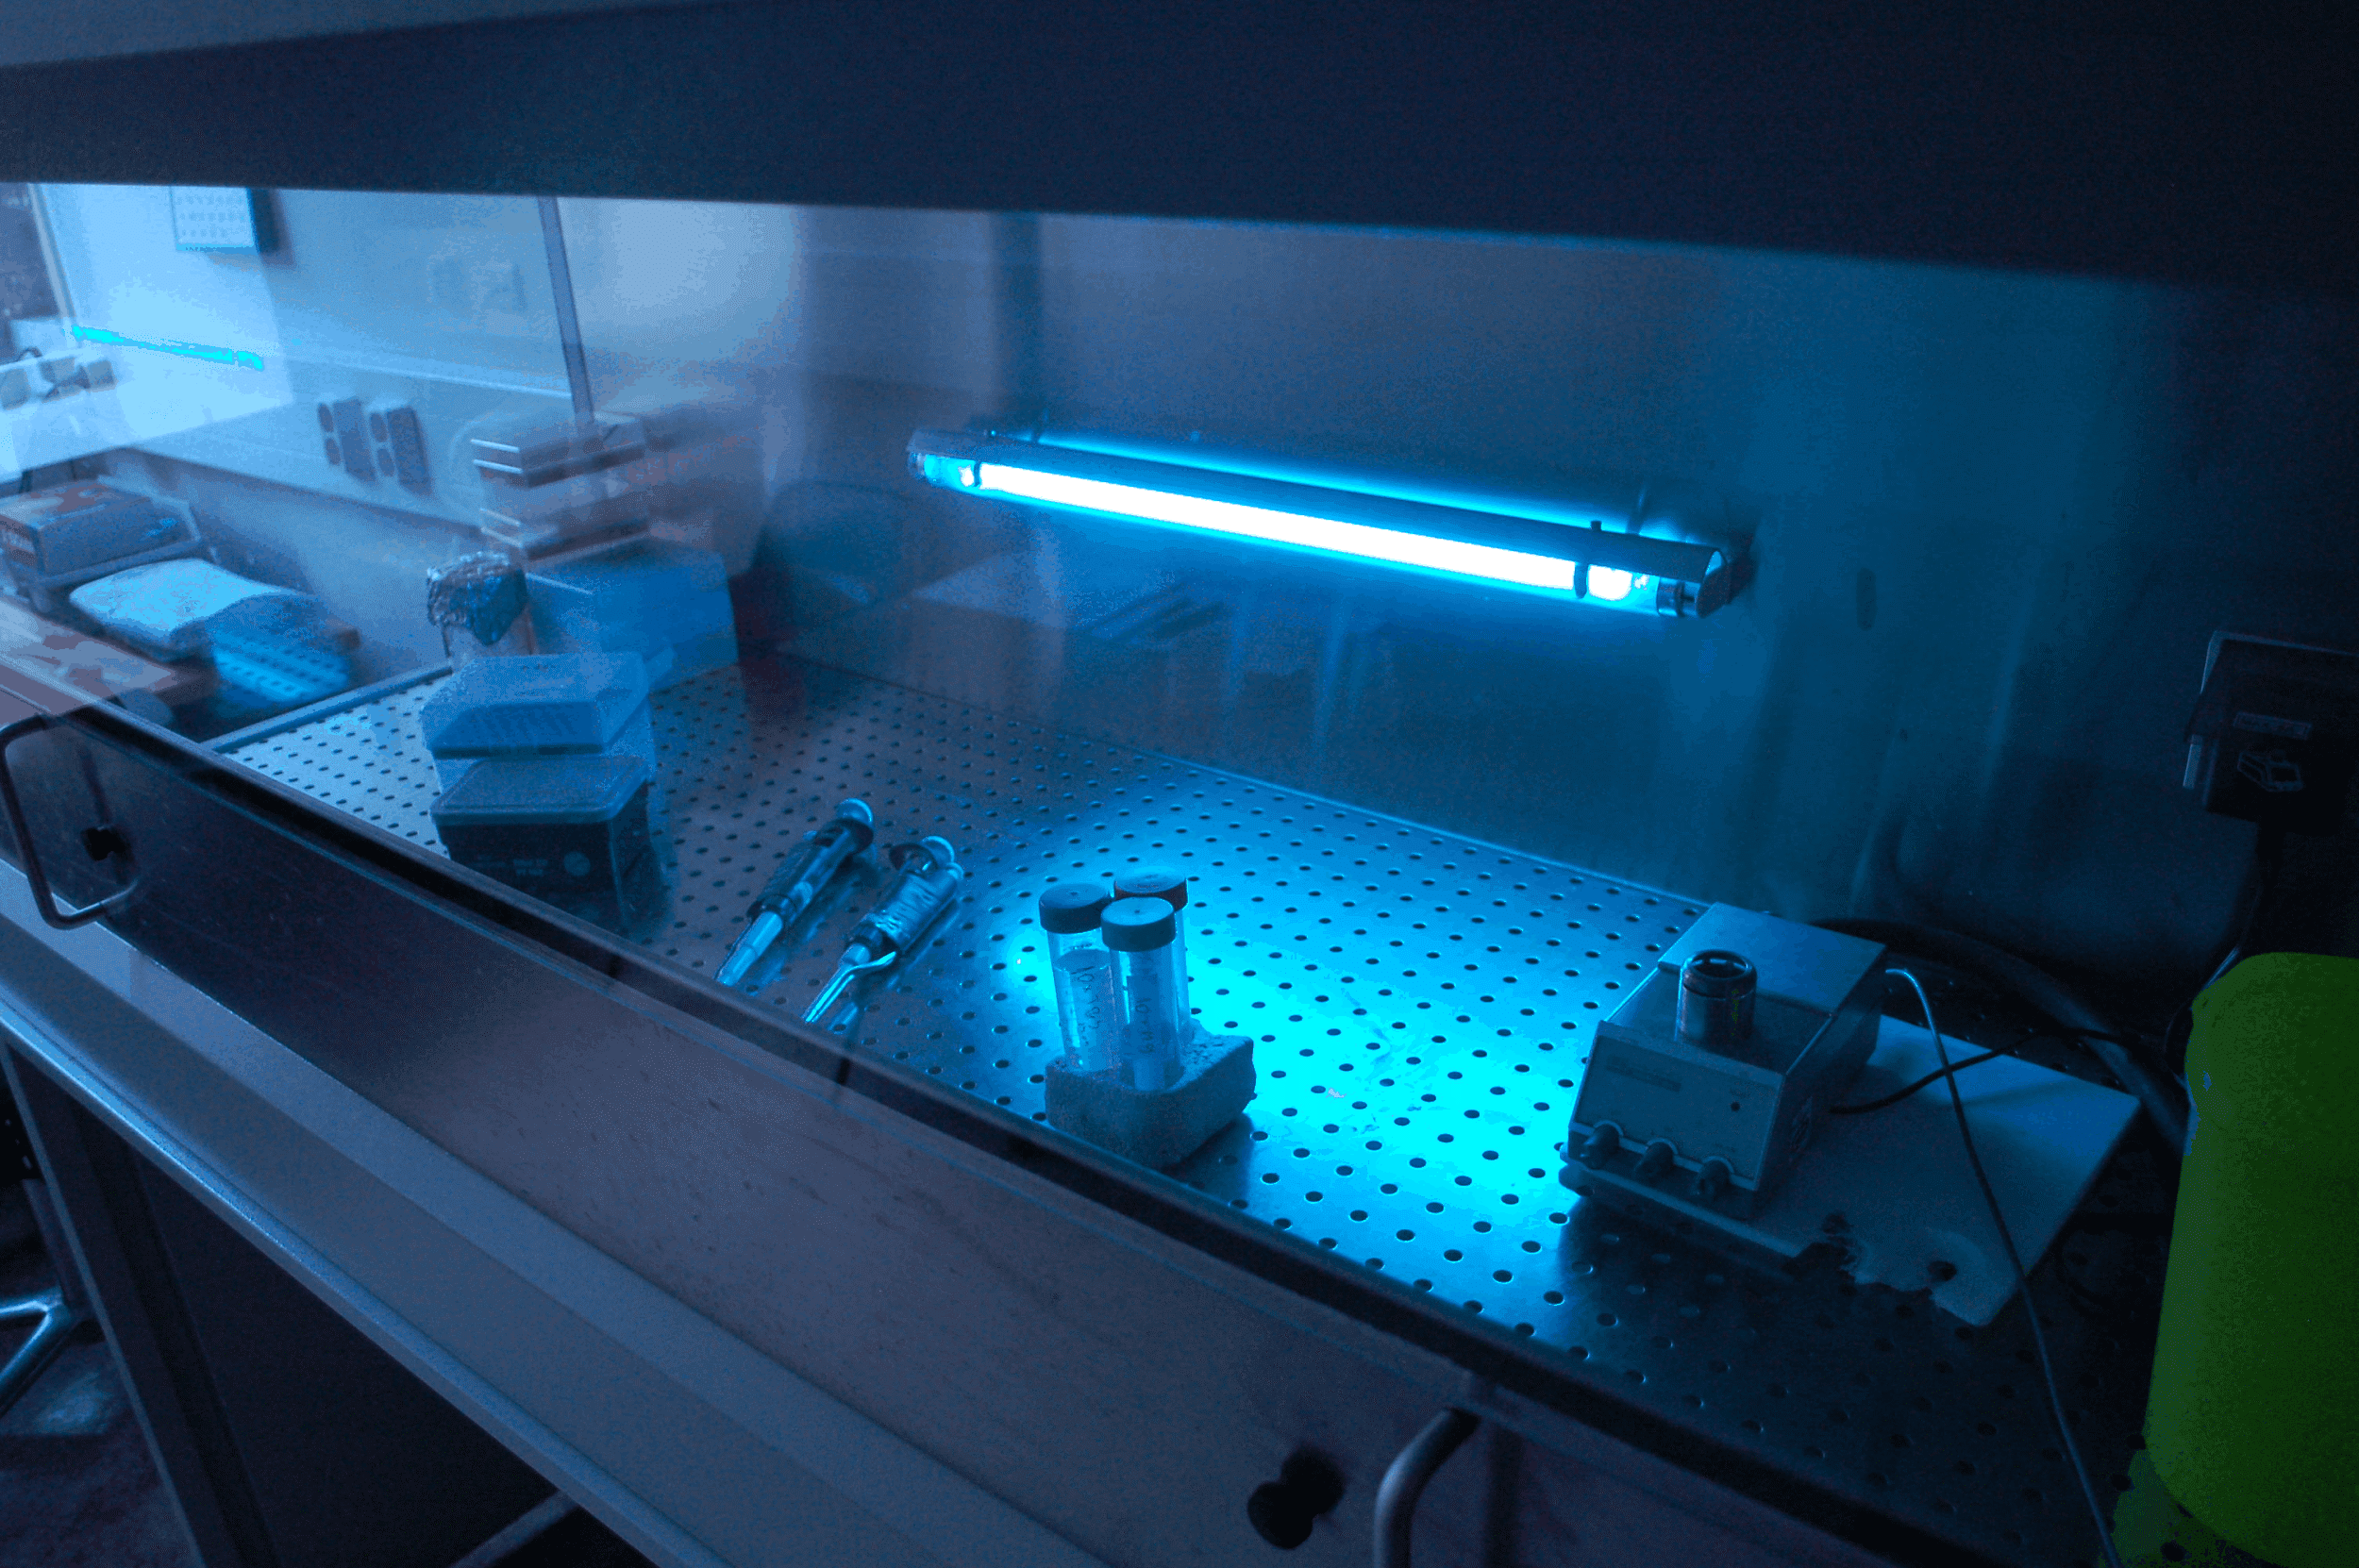 Optimization of ultraviolet light devices for air disinfection